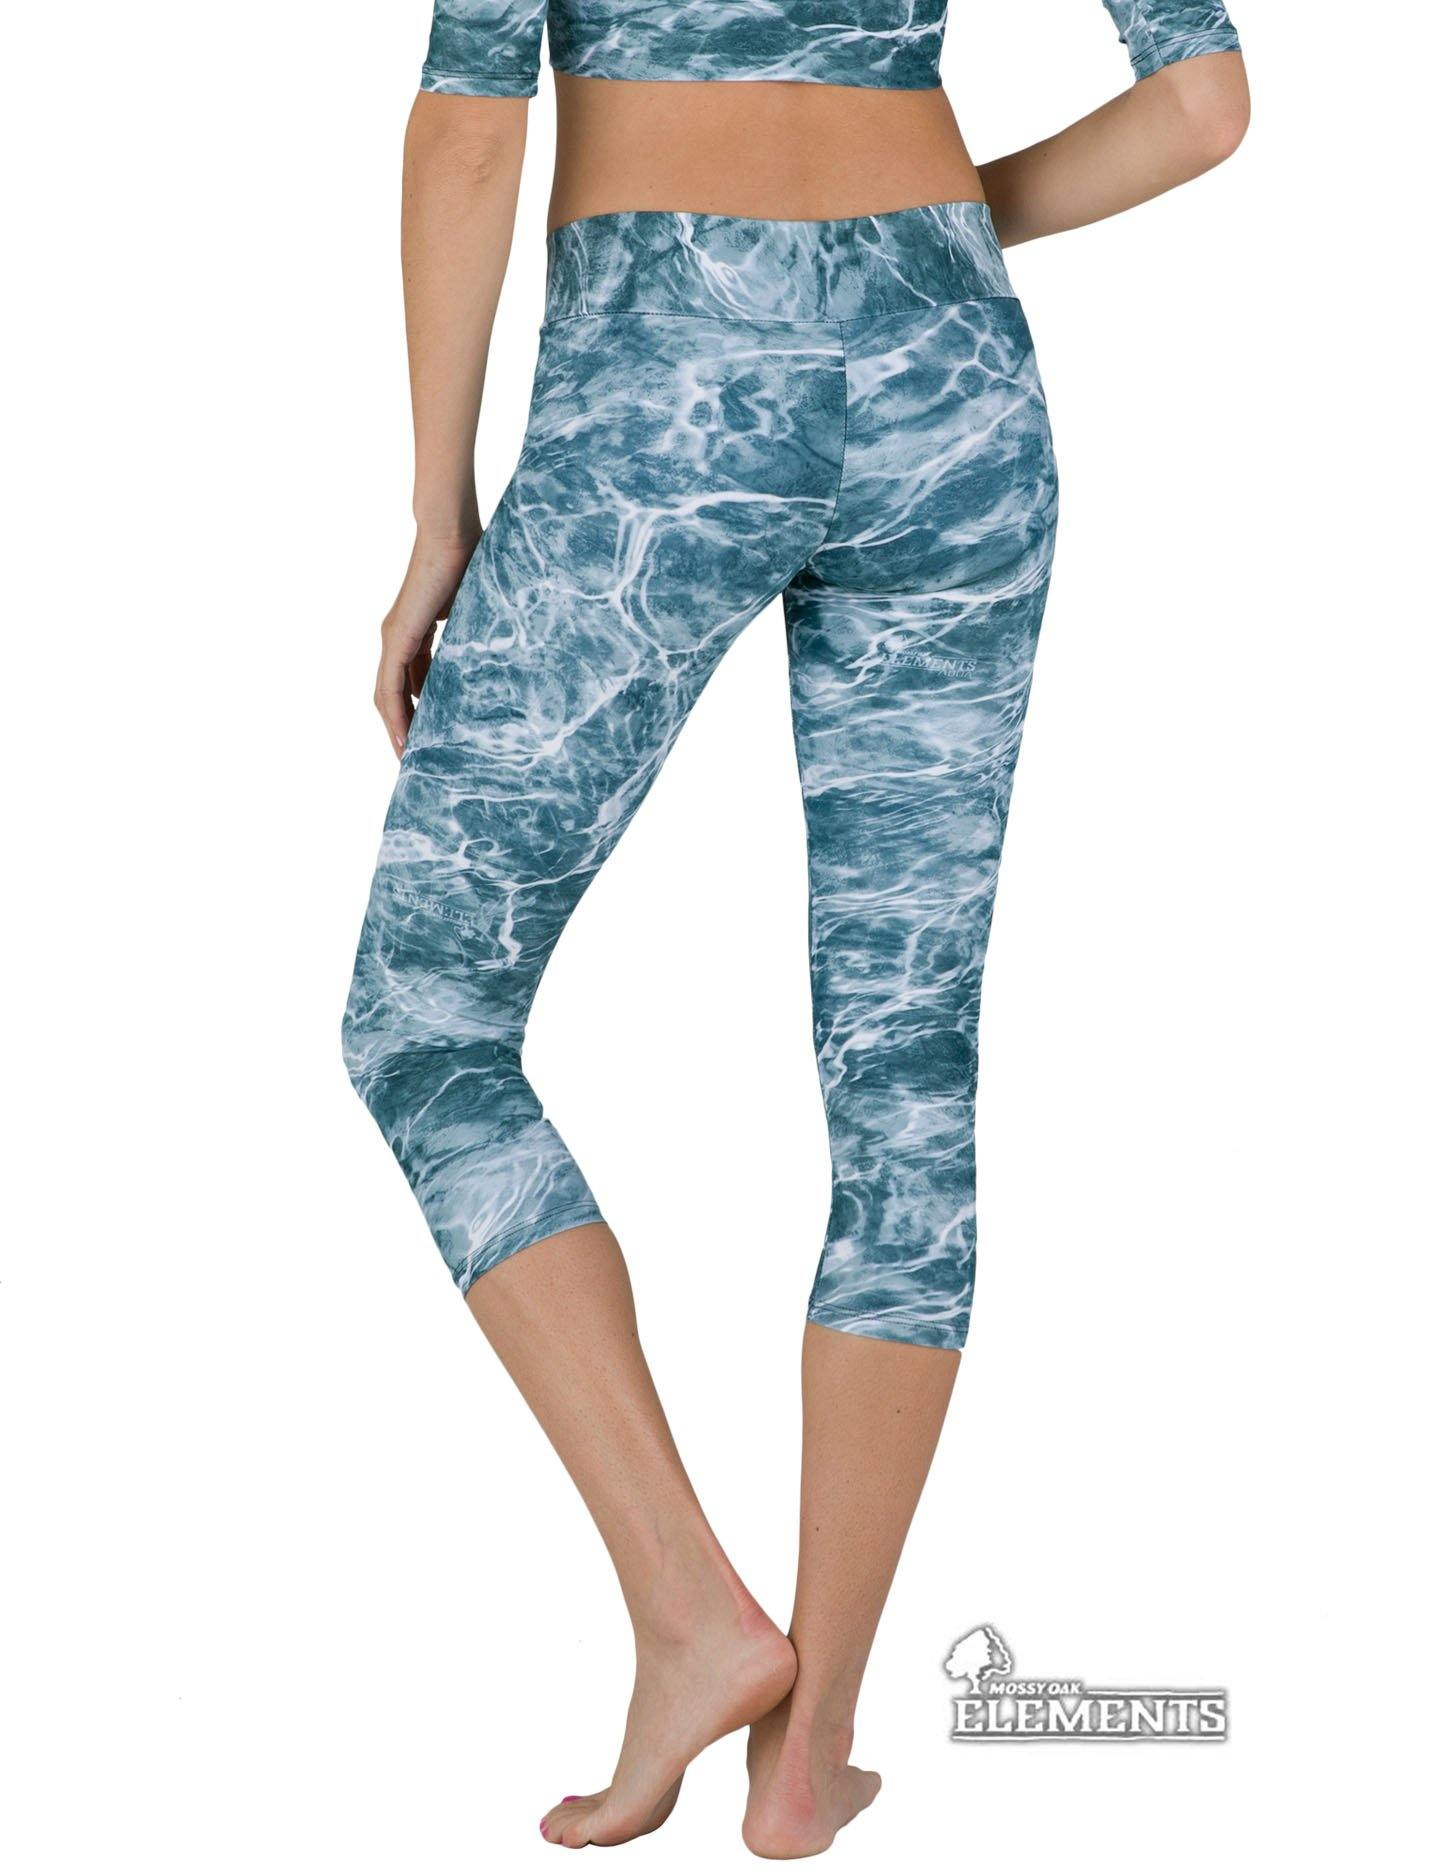 Apsara Leggings Low Waist Capri, Mossy Oak Elements Spindrift